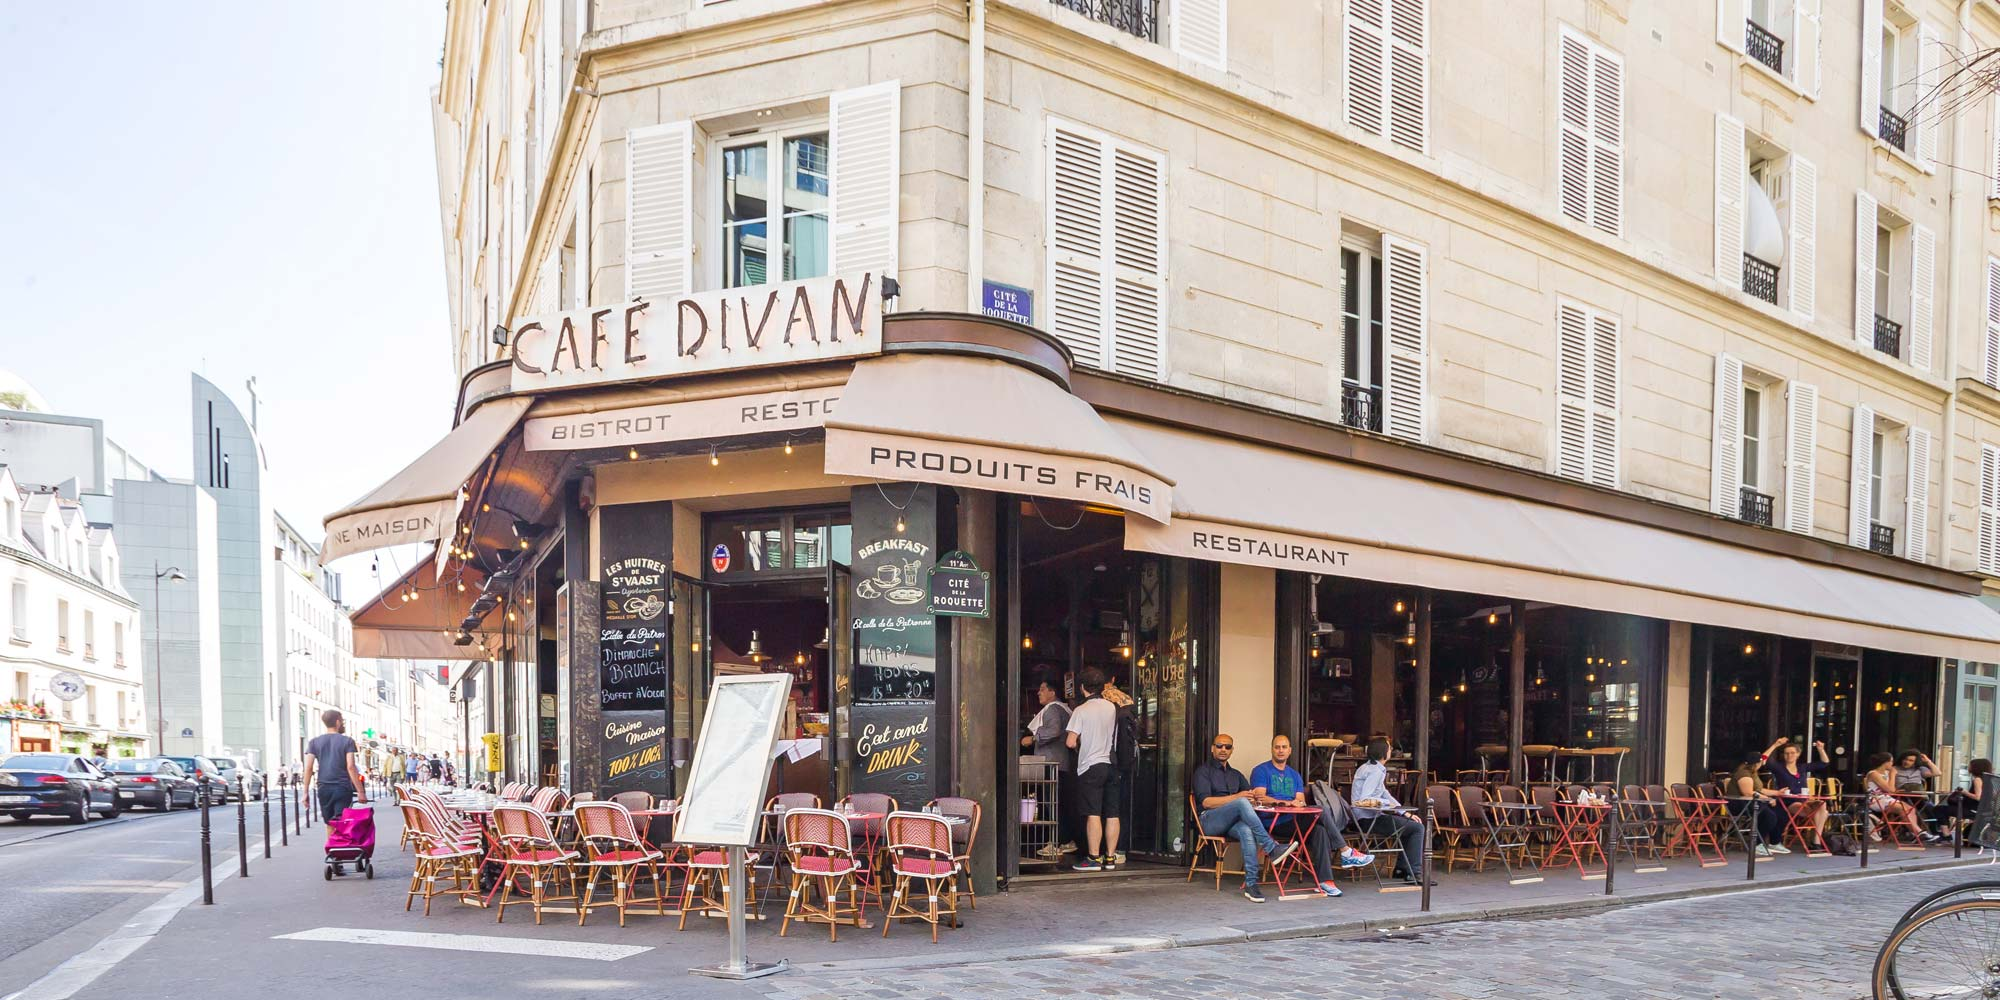 Brunch caf divan 75011 paris oubruncher for Garage mini rue des acacias paris 17